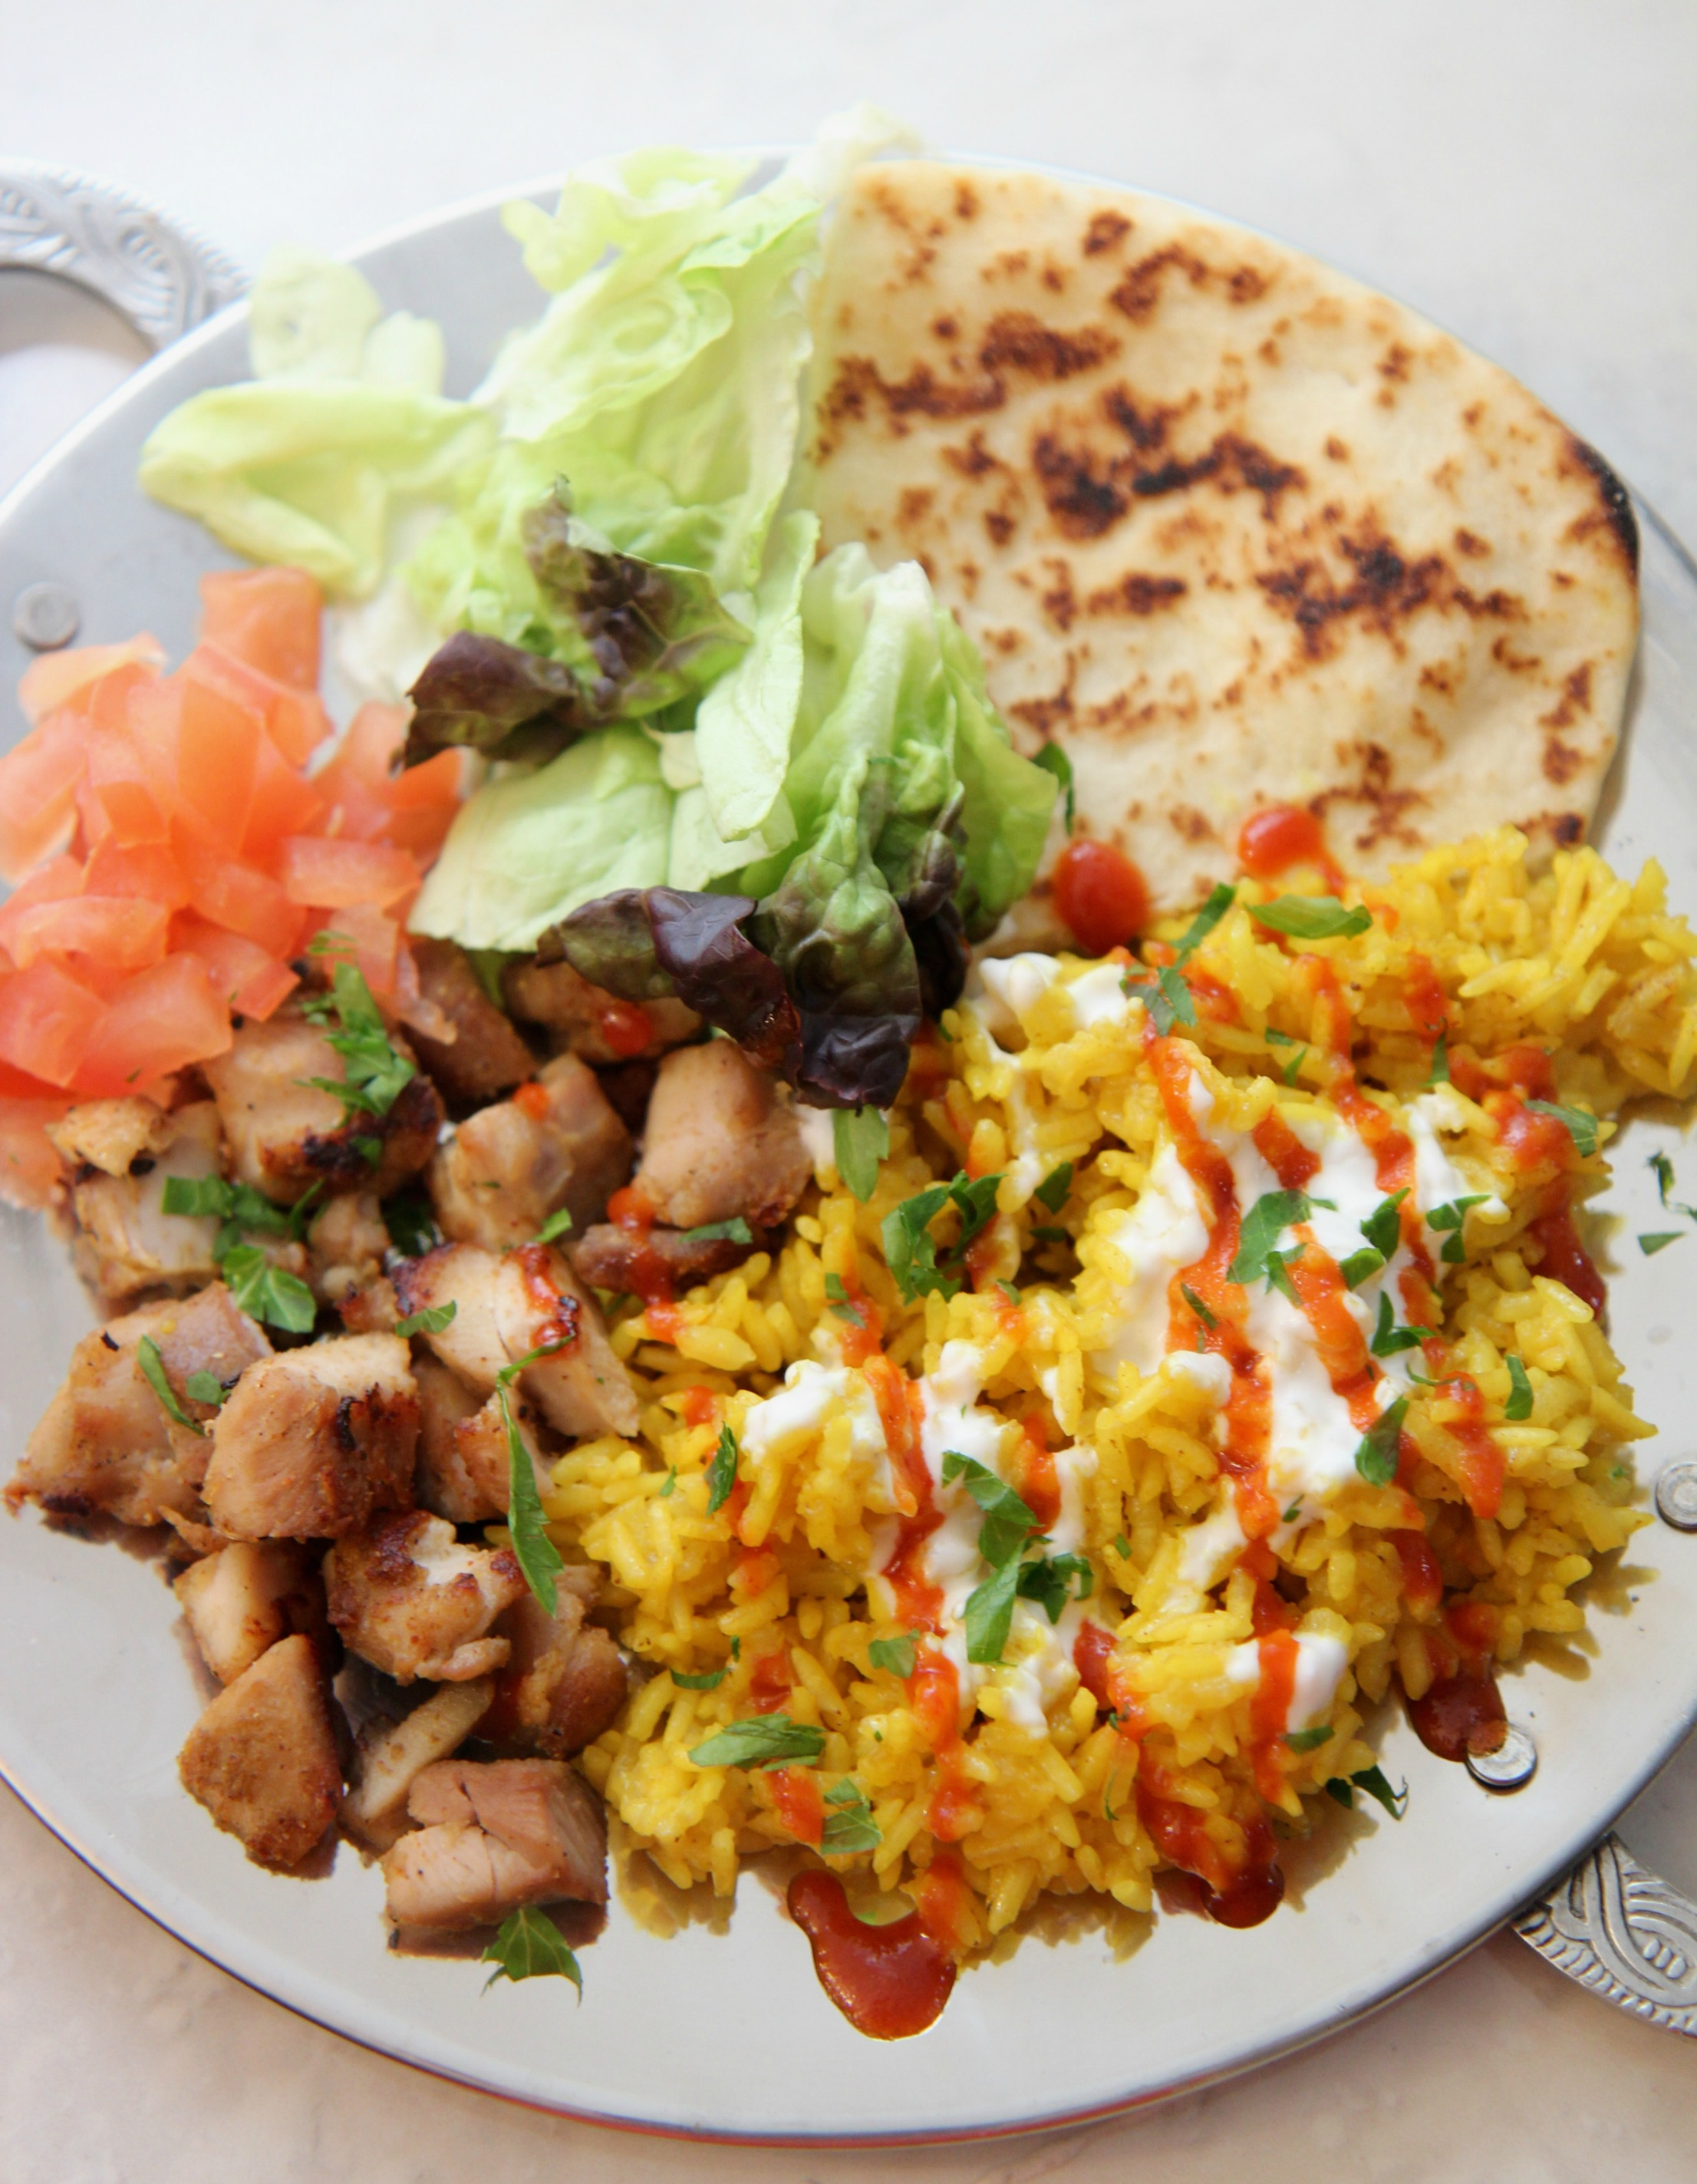 This Halal guys chicken and rice recipe is similar to what you'd get at a lunch cart in NYC.